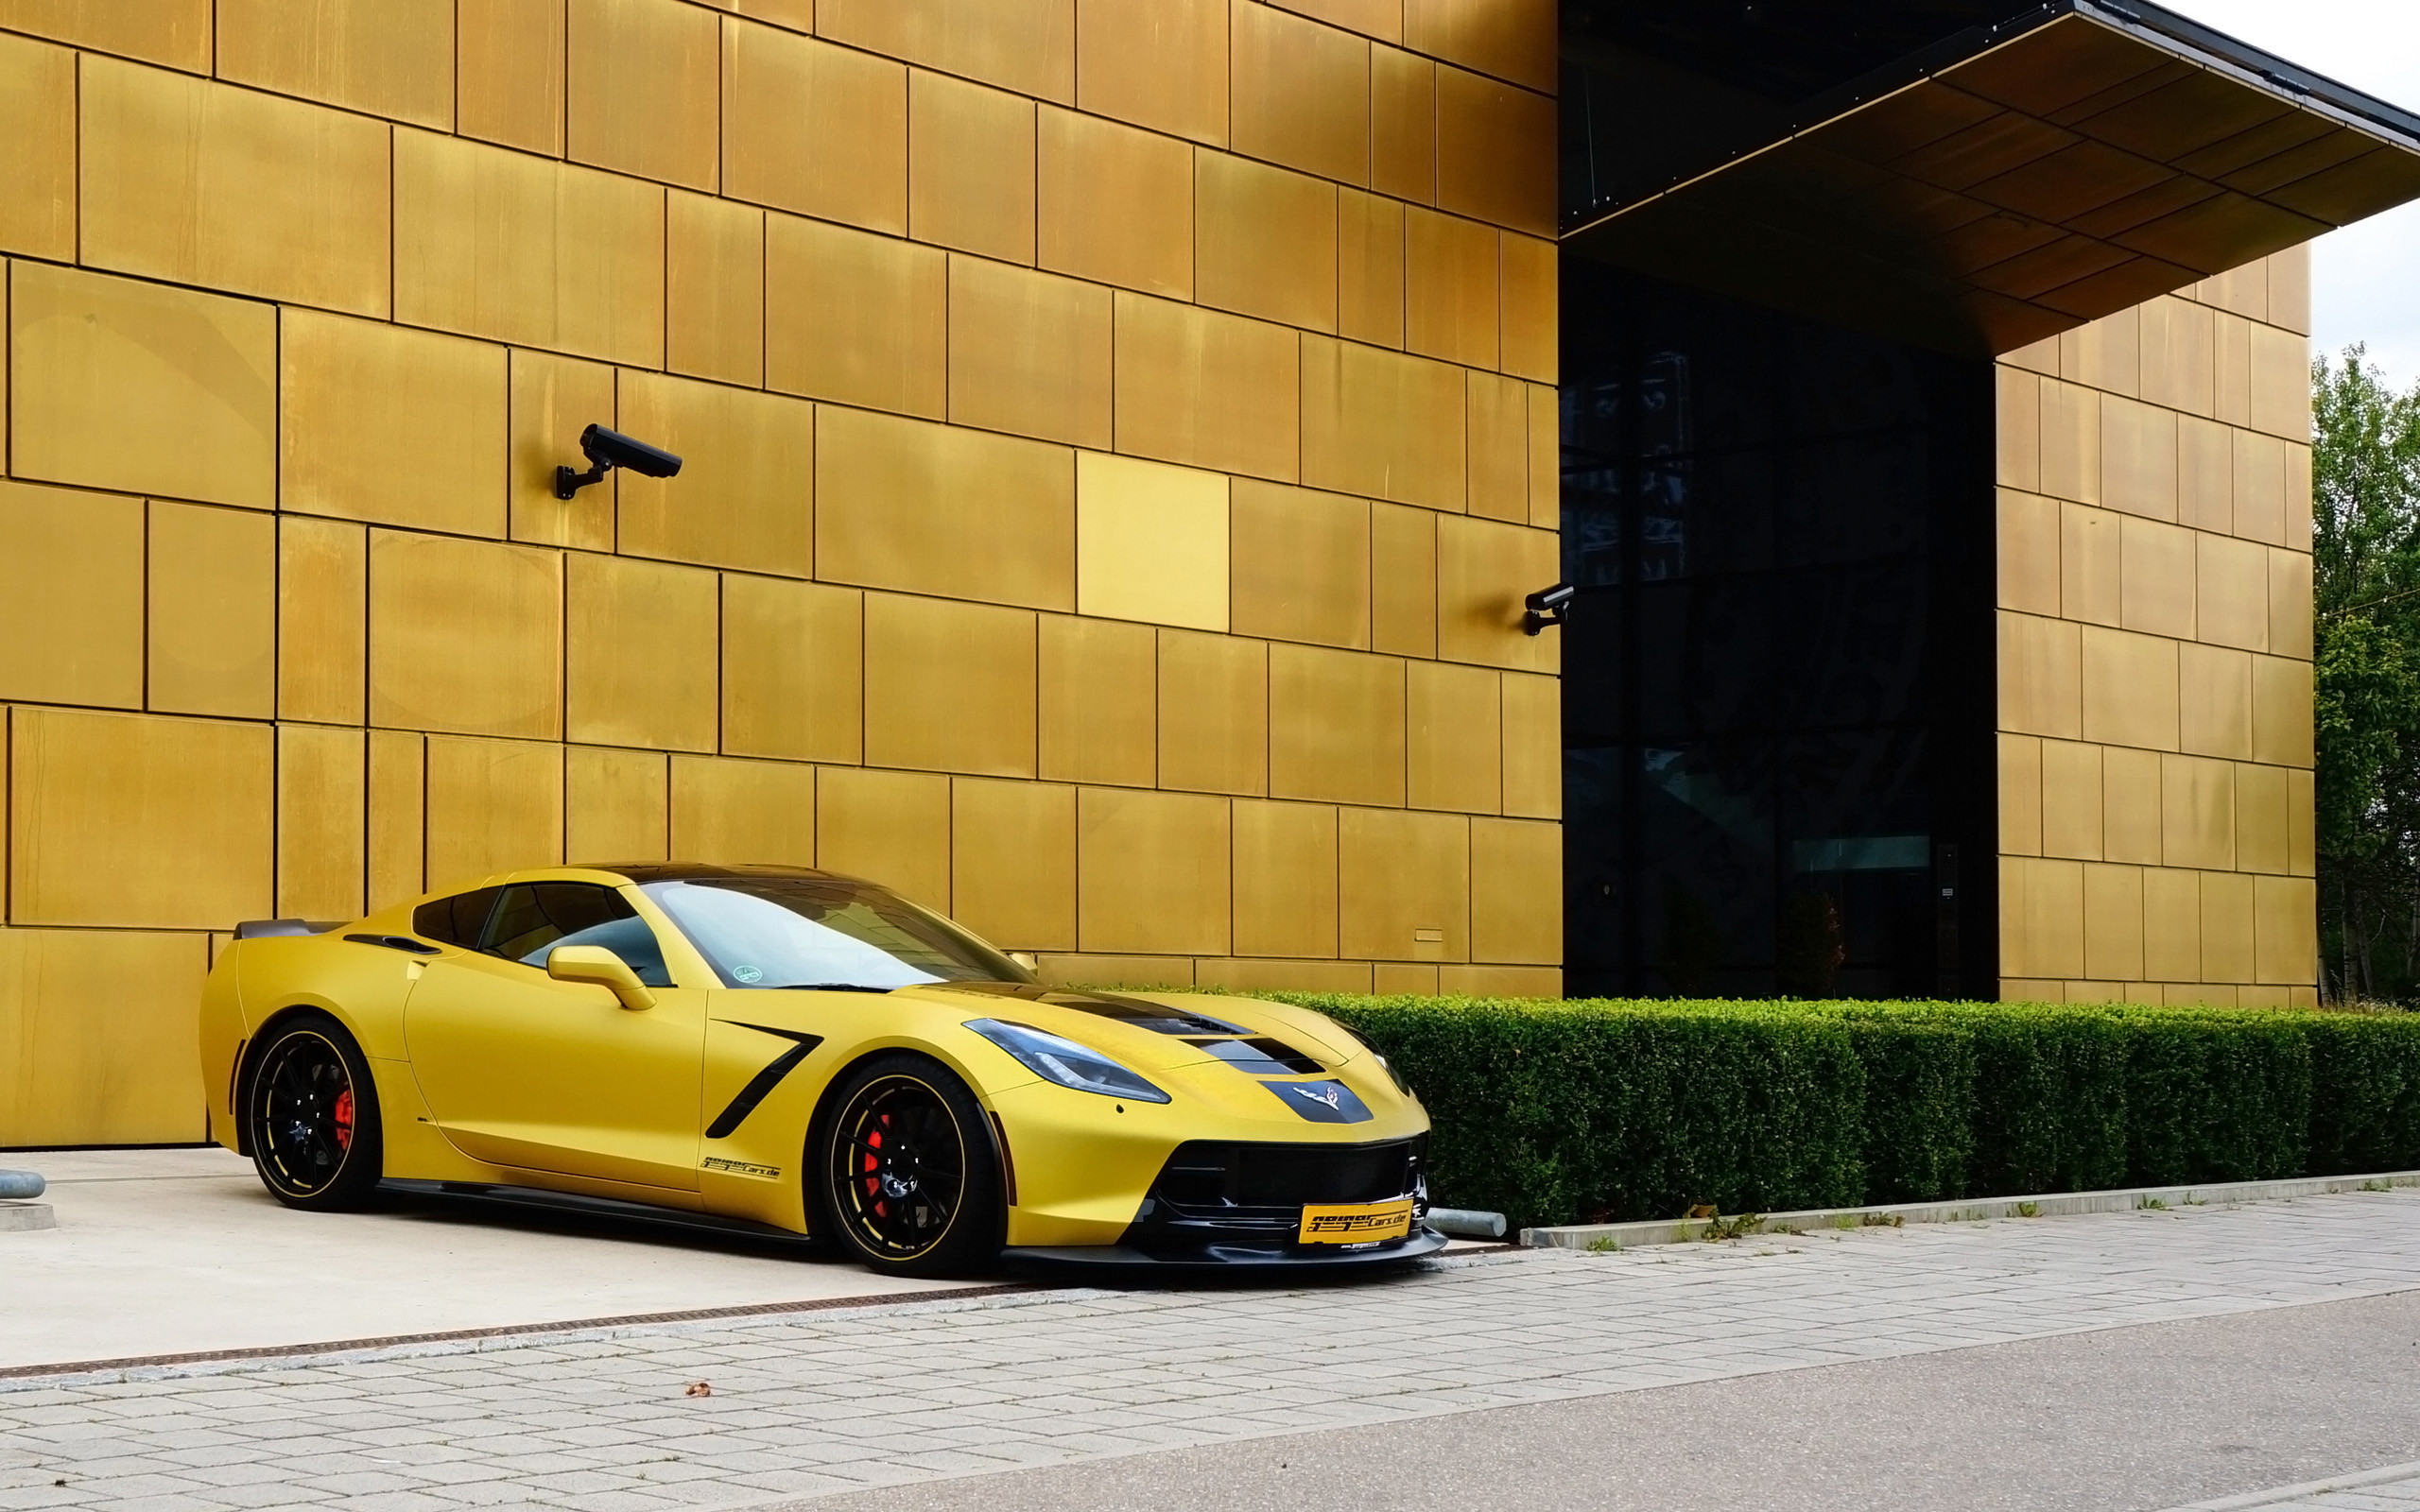 2560x1600 GeigerCars Chevrolet Corvette C7 Stingray 2014